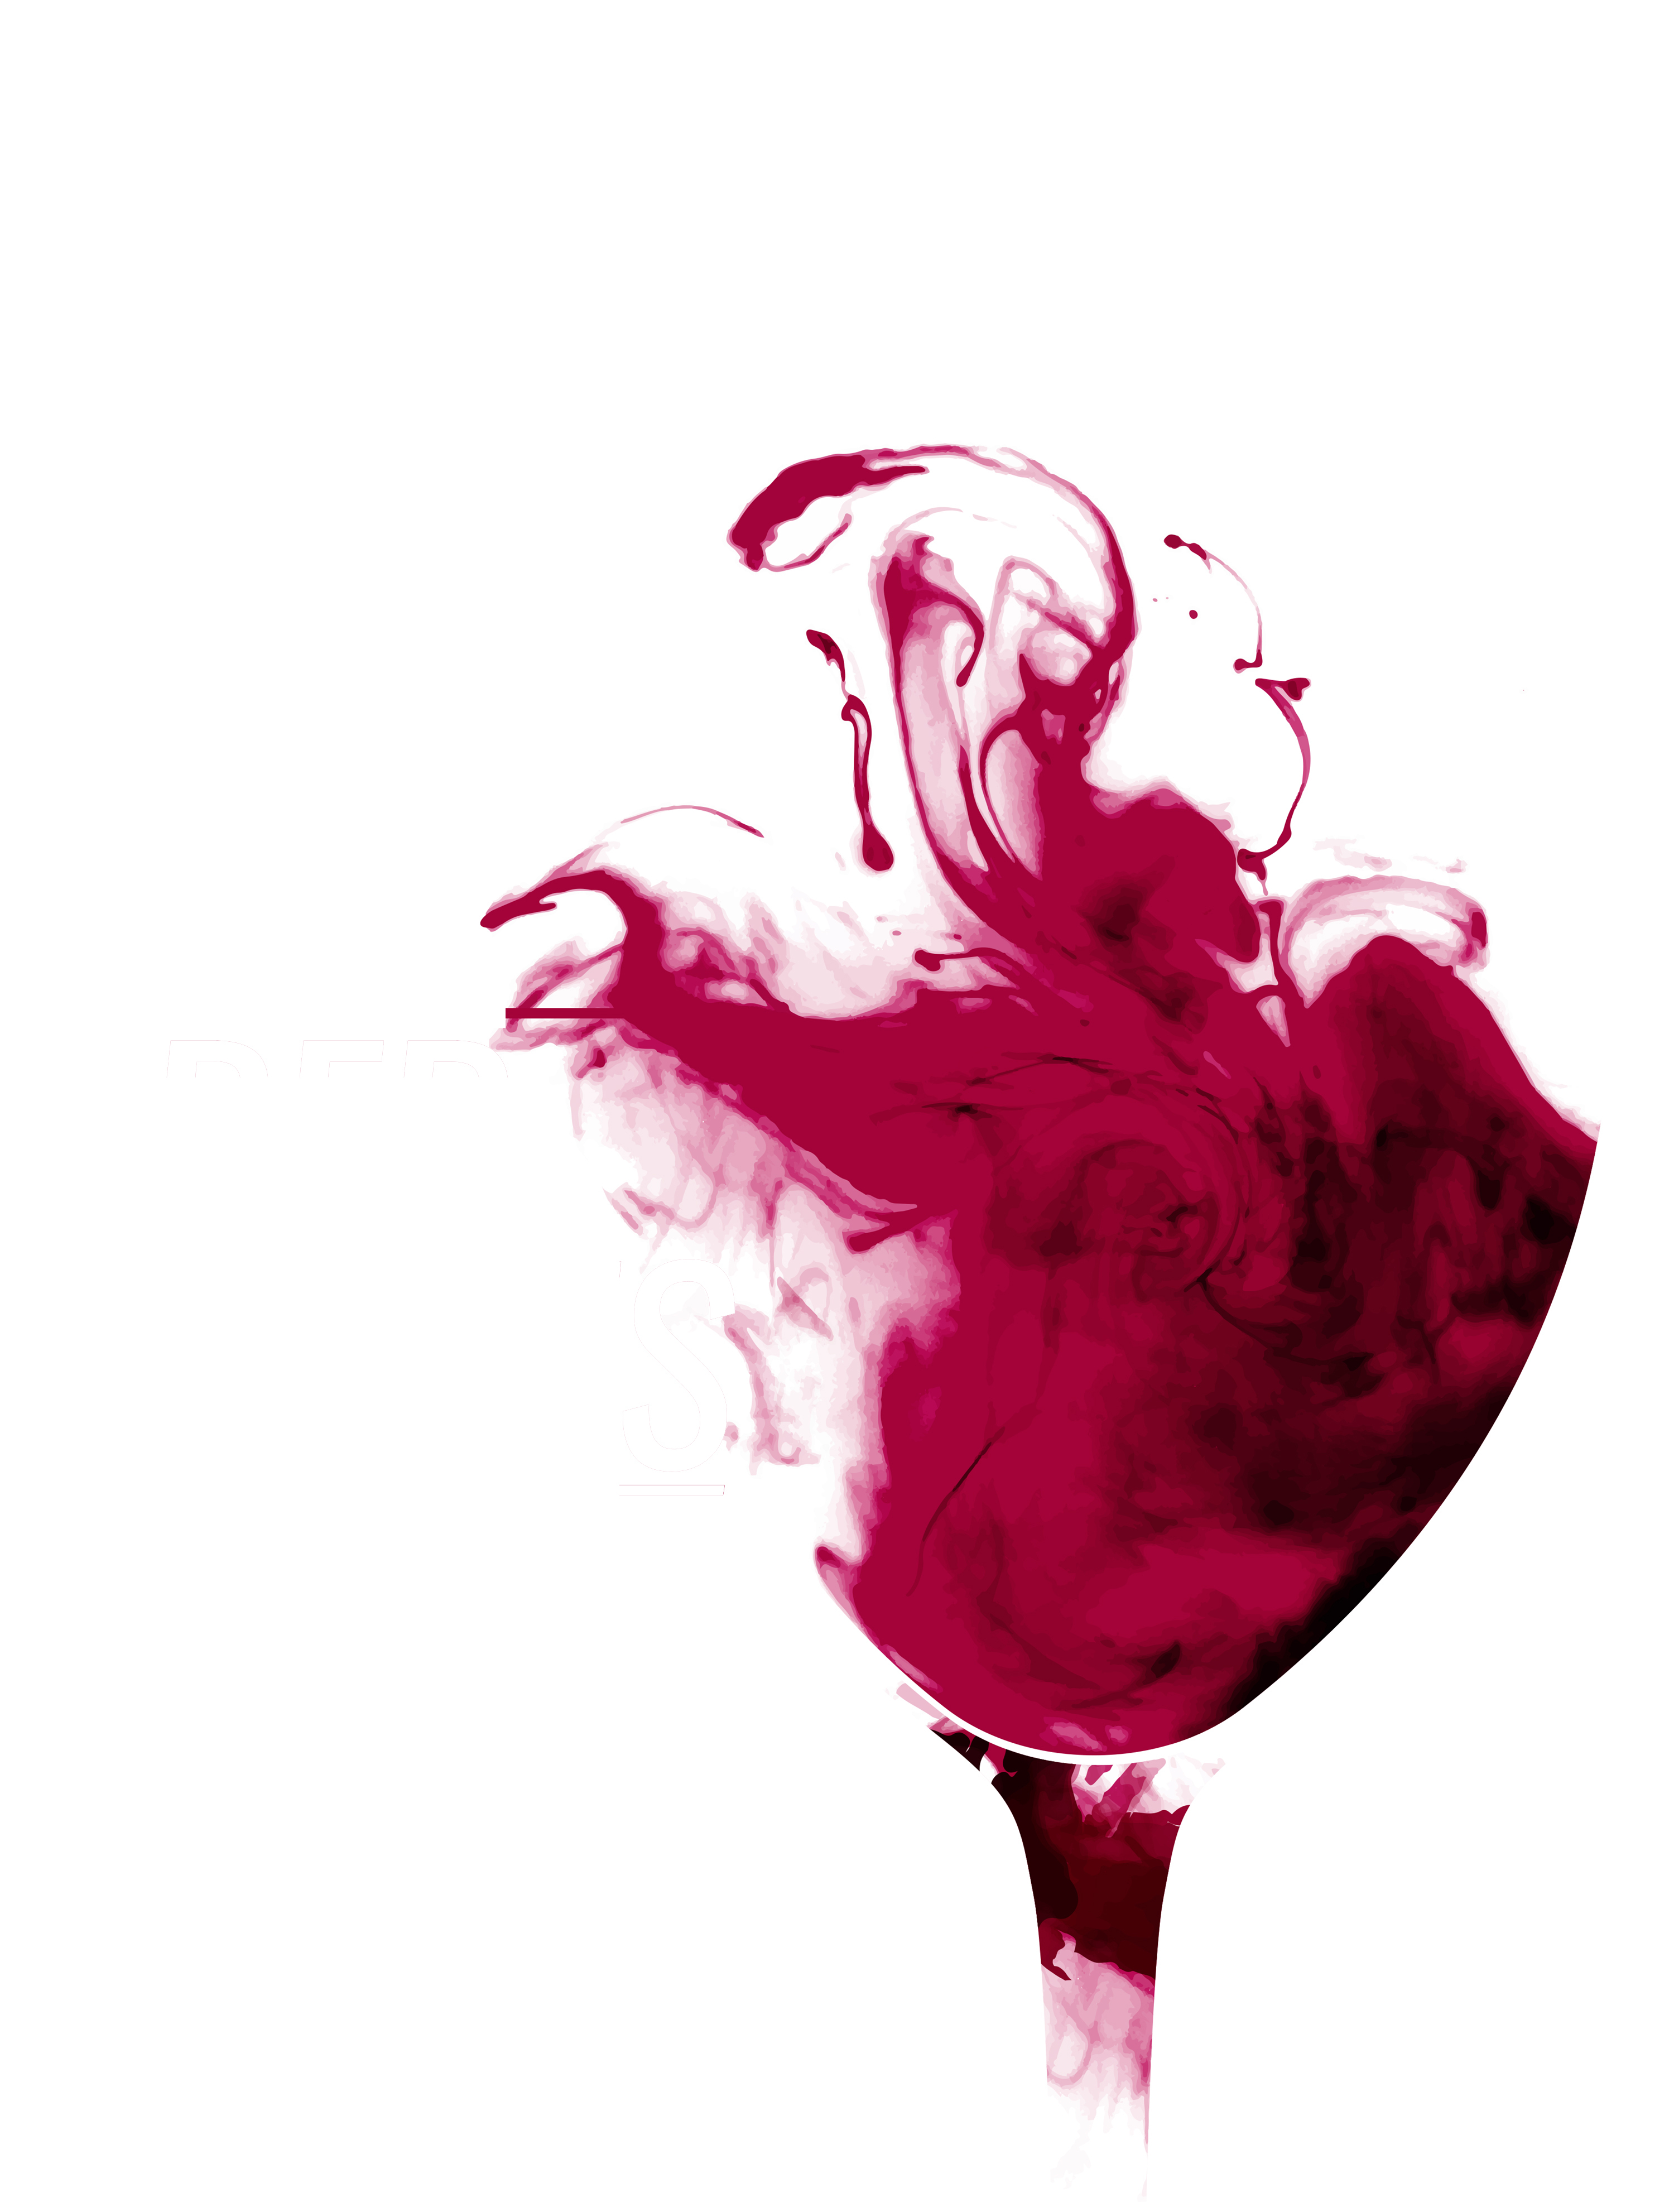 Duck Pond Cellars - Wine Club Blending Sessions @ Duck Pond Cellars